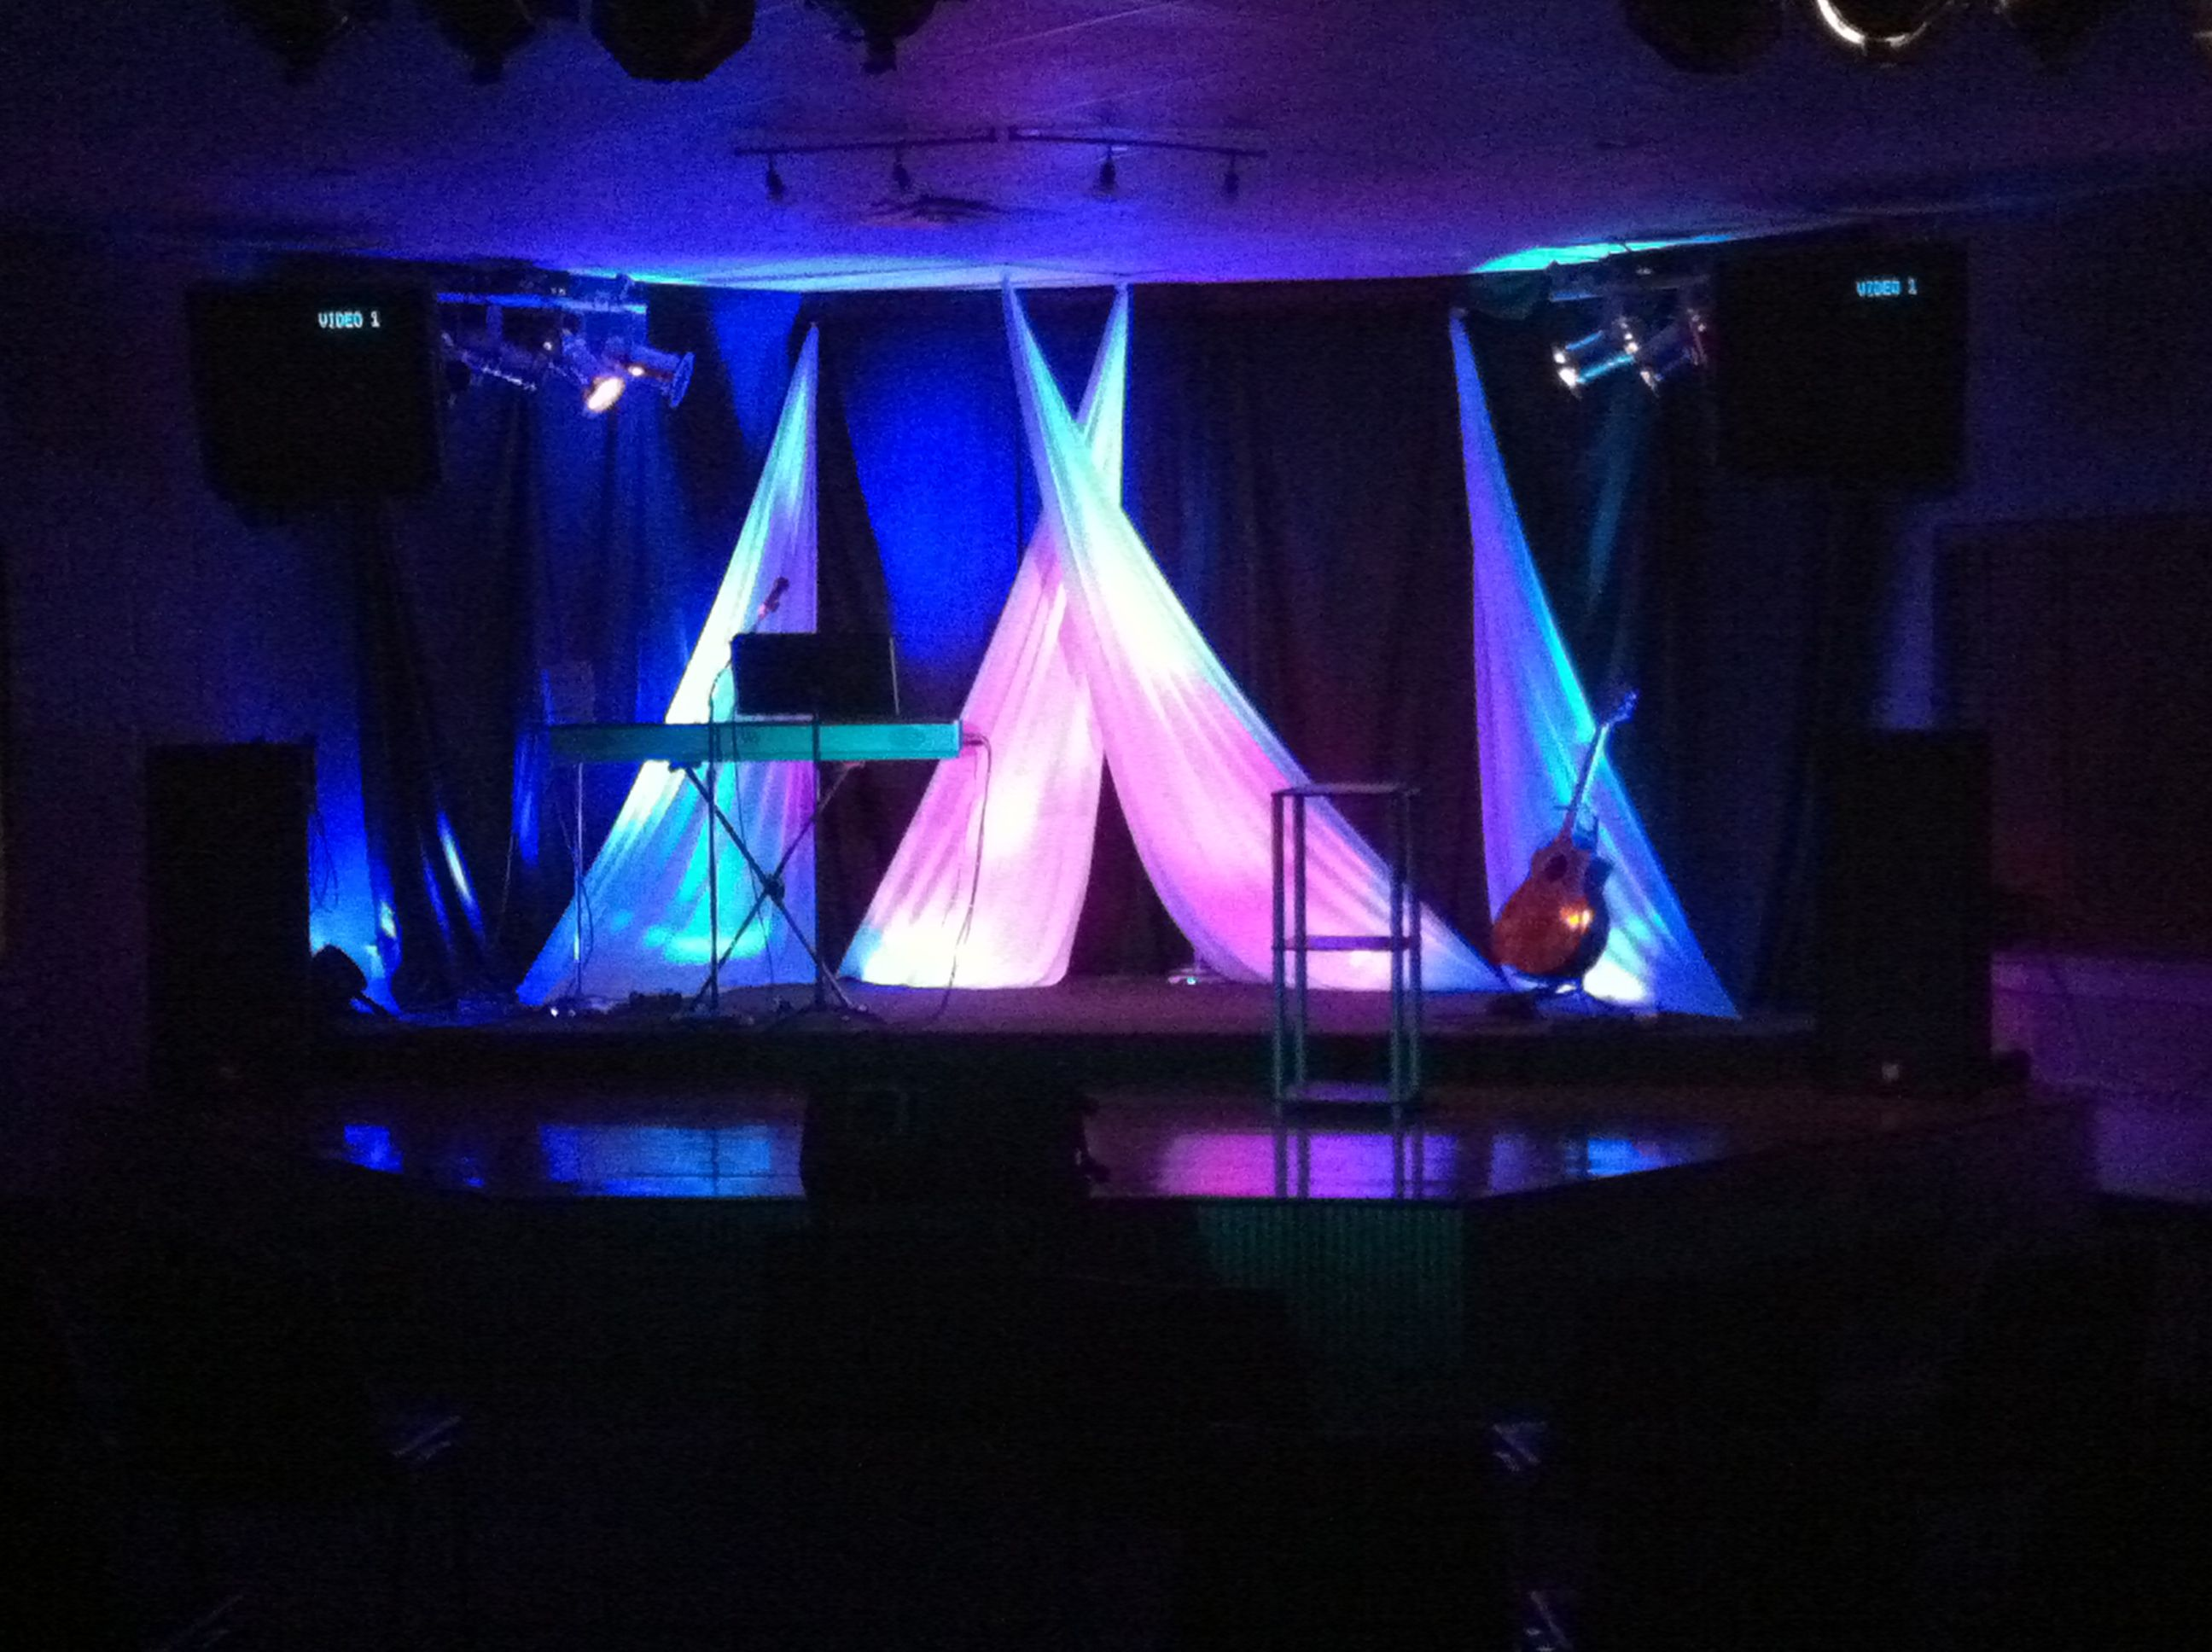 cheap church stage design ideas they pinned the other corners to the floor and hid